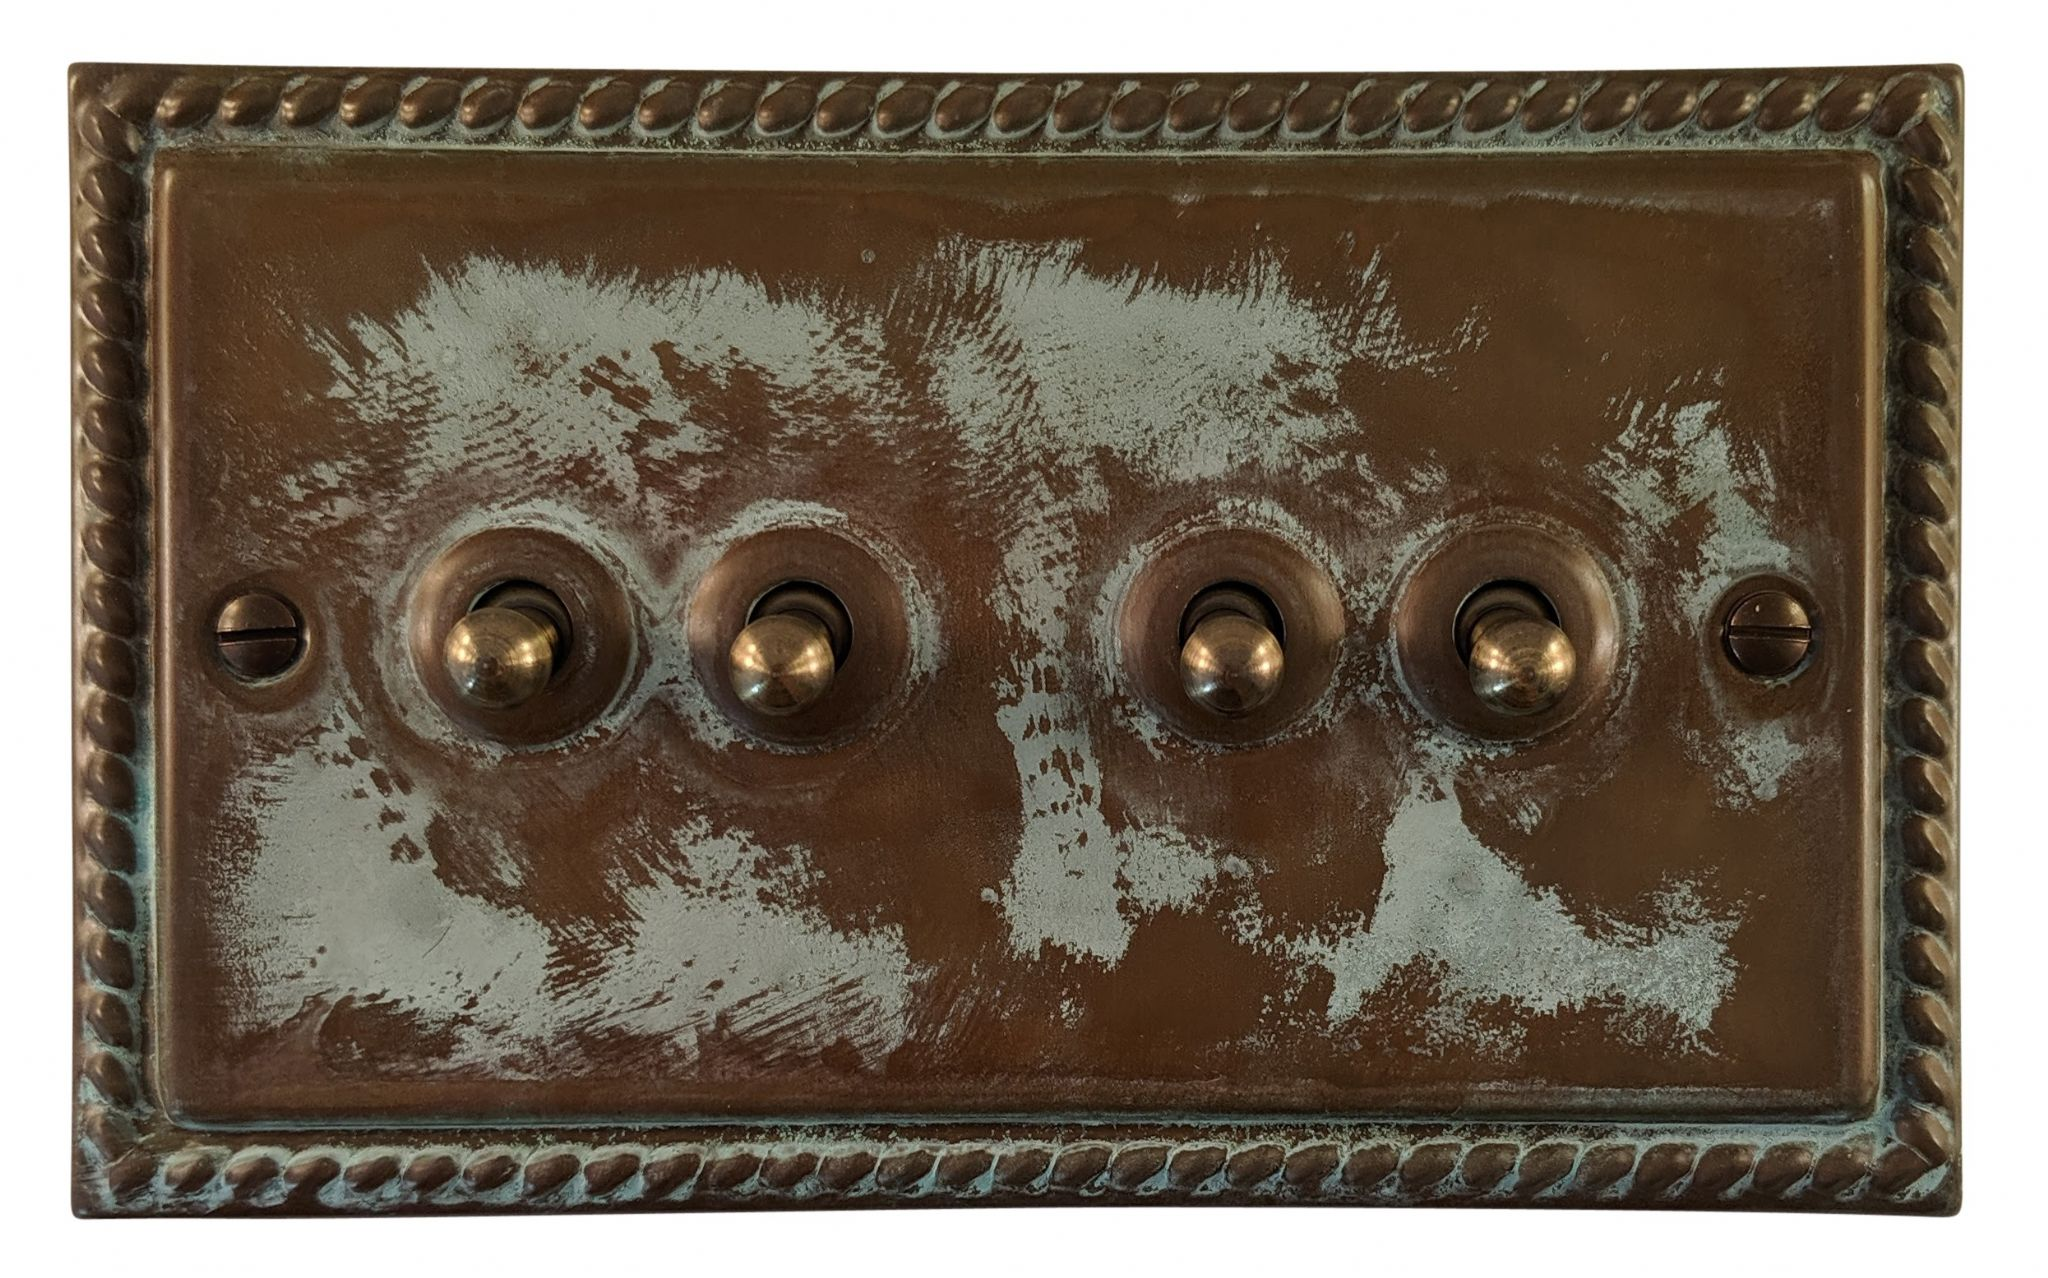 G&H MV284 Monarch Roped Verdigris 4 Gang 1 or 2 Way Toggle Light Switch